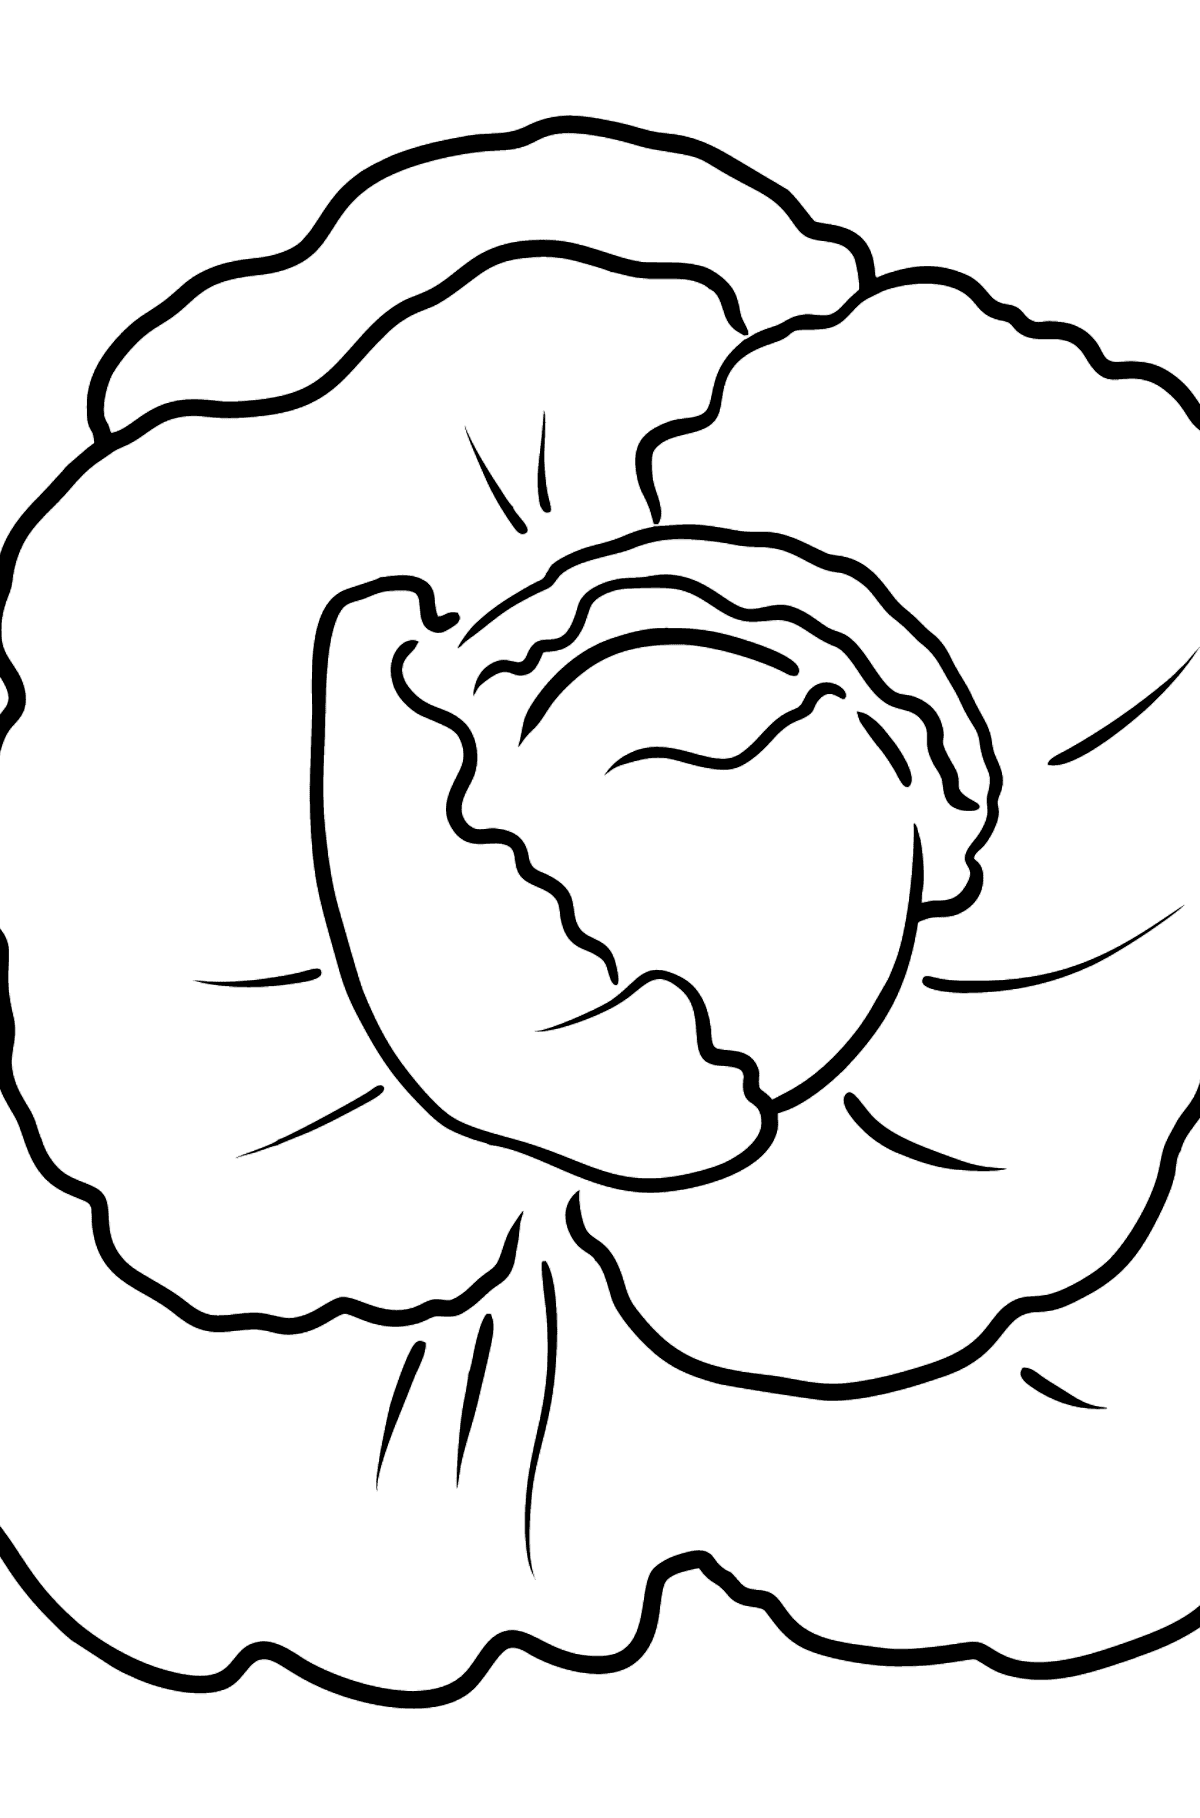 White Cabbage coloring page - Coloring Pages for Kids